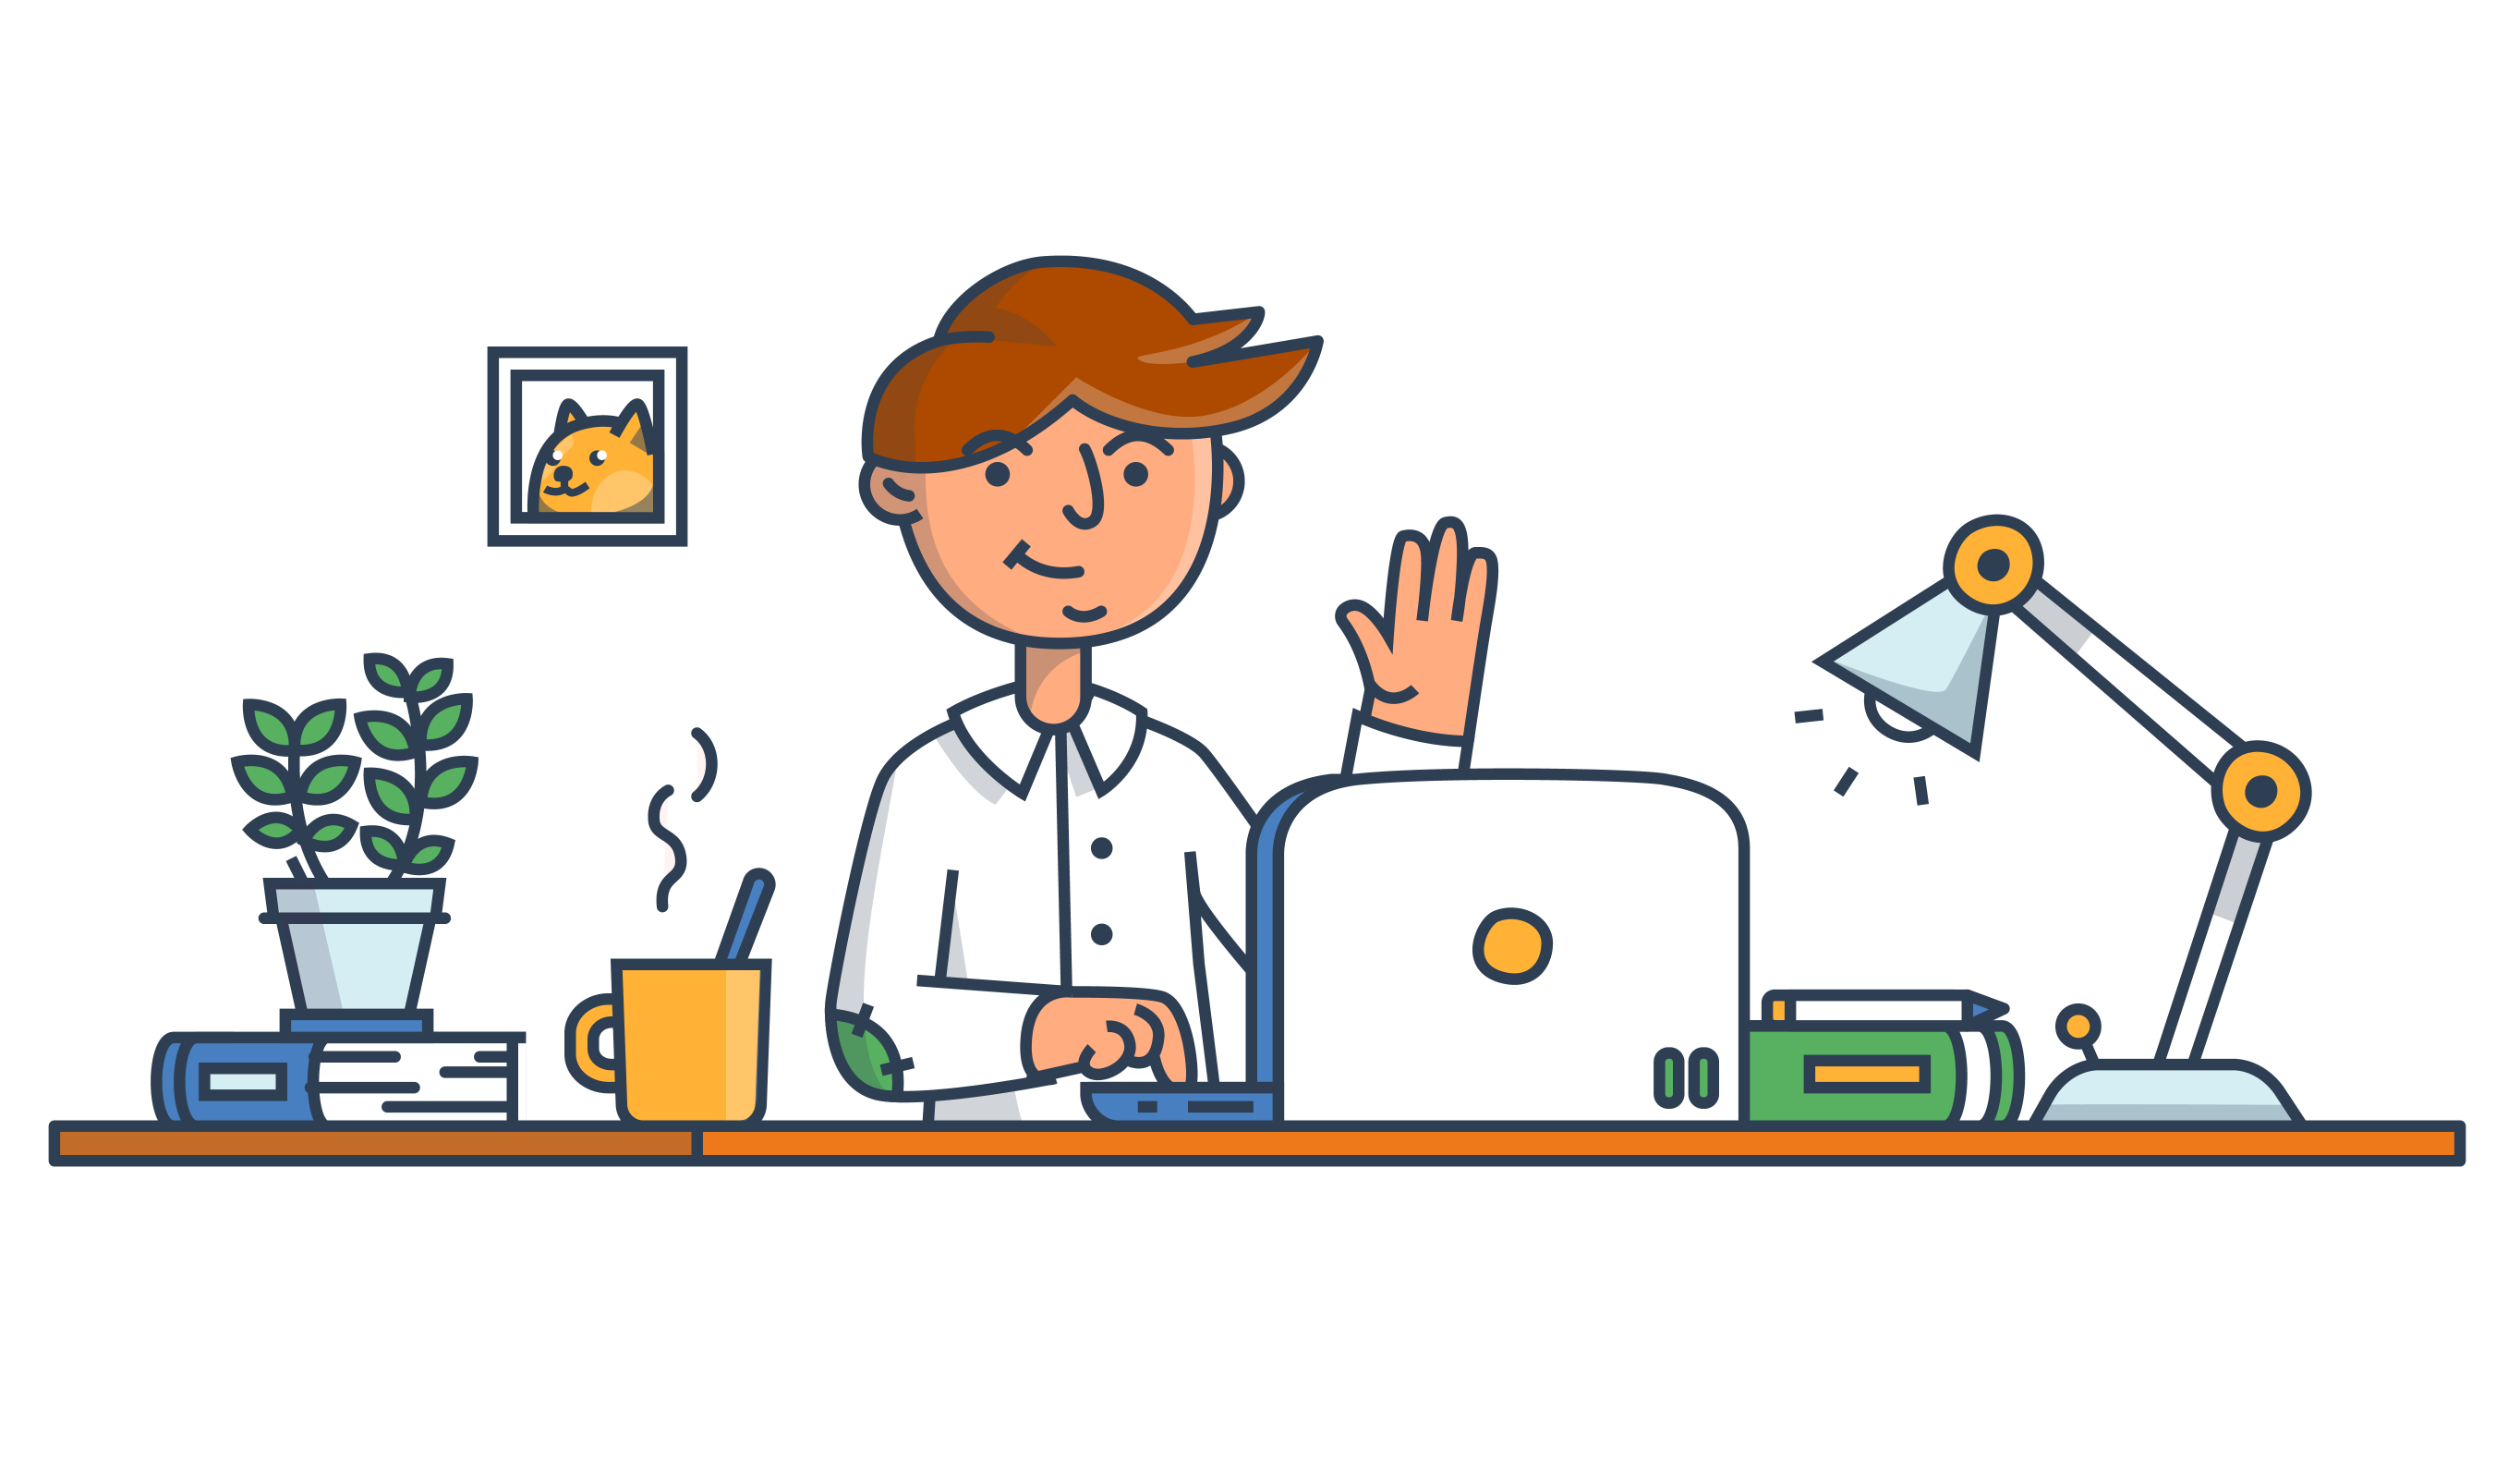 Excited clipart successful employee. Community remotive goodlooking remote